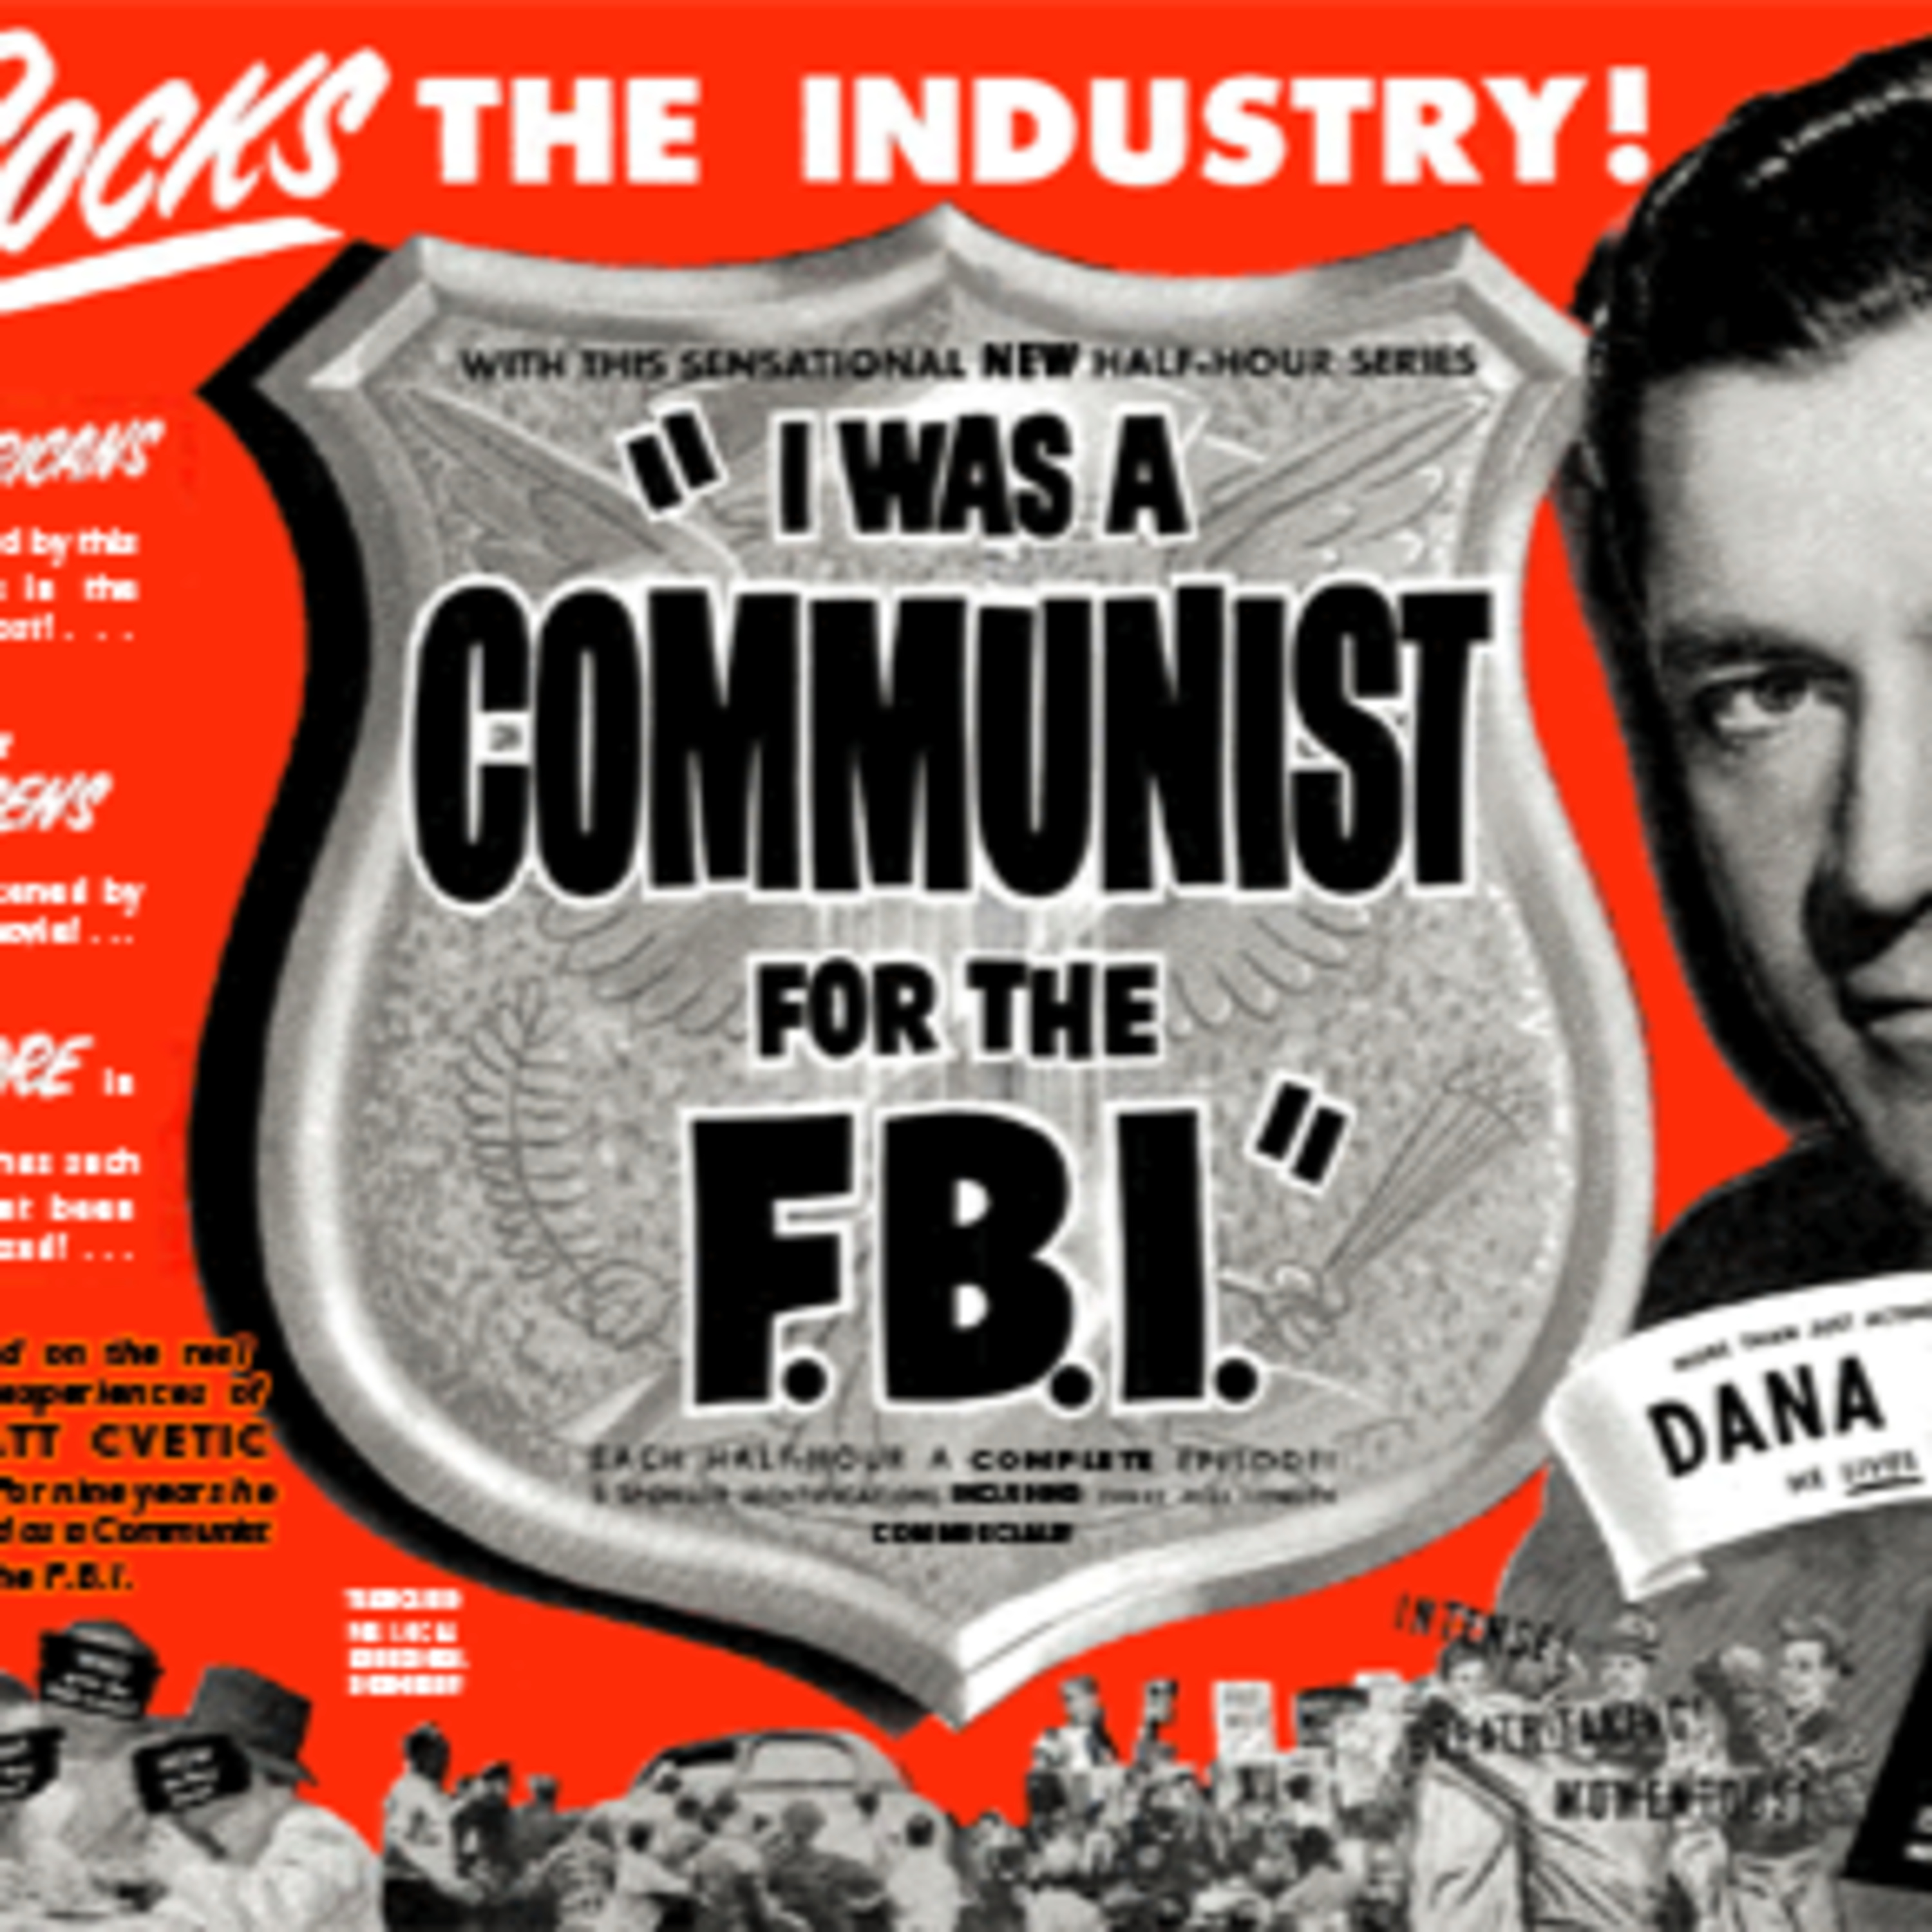 I Was a Communist for the FBI - True Stories of the FBI Undercover - Traitors for Hire - Pit Viper - Red Herring - Hit 50's Radio Show!